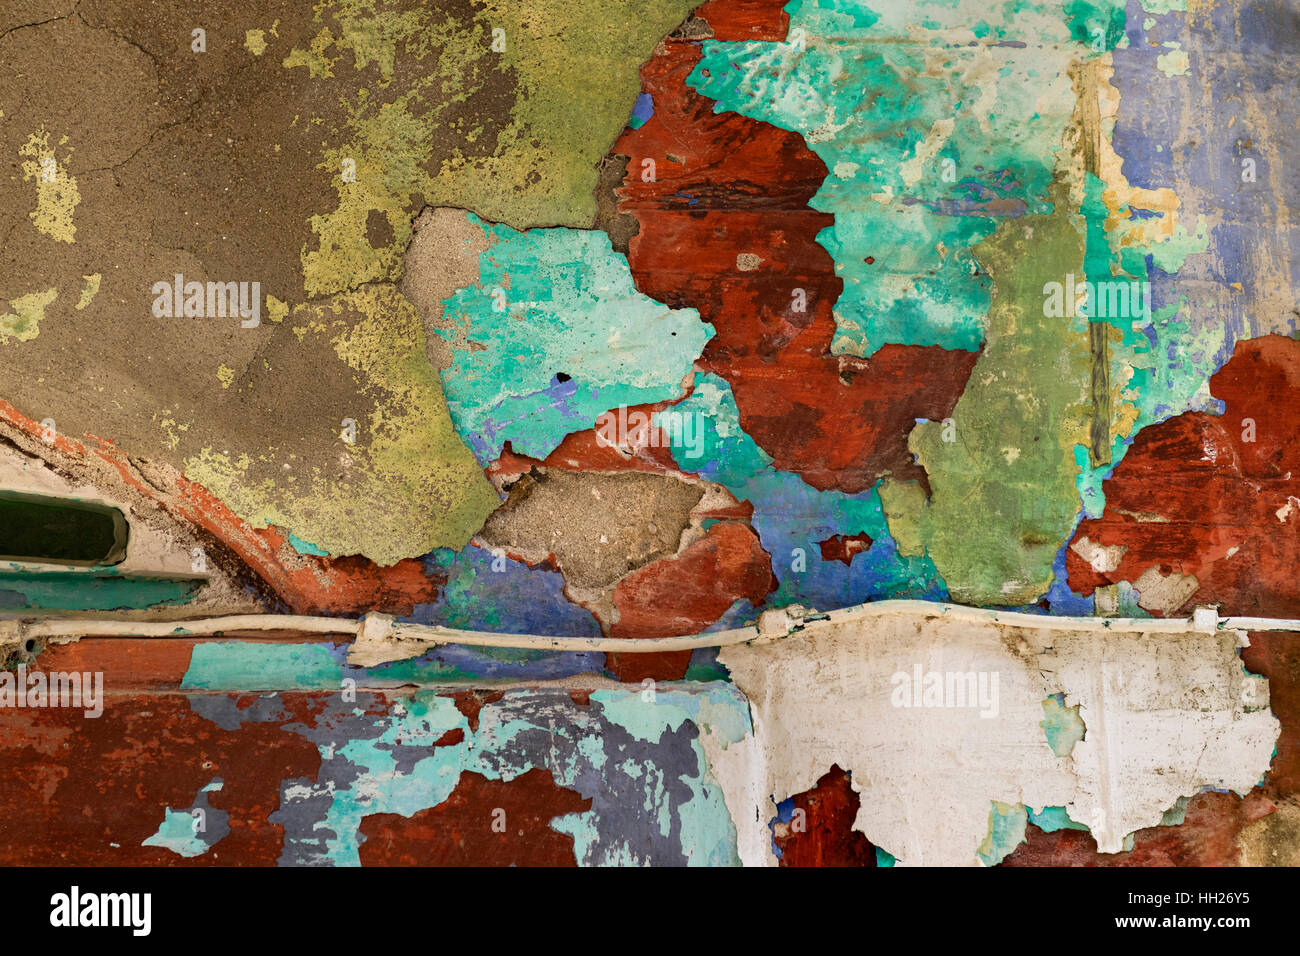 Old wall with cracks and paint stains - Stock Image